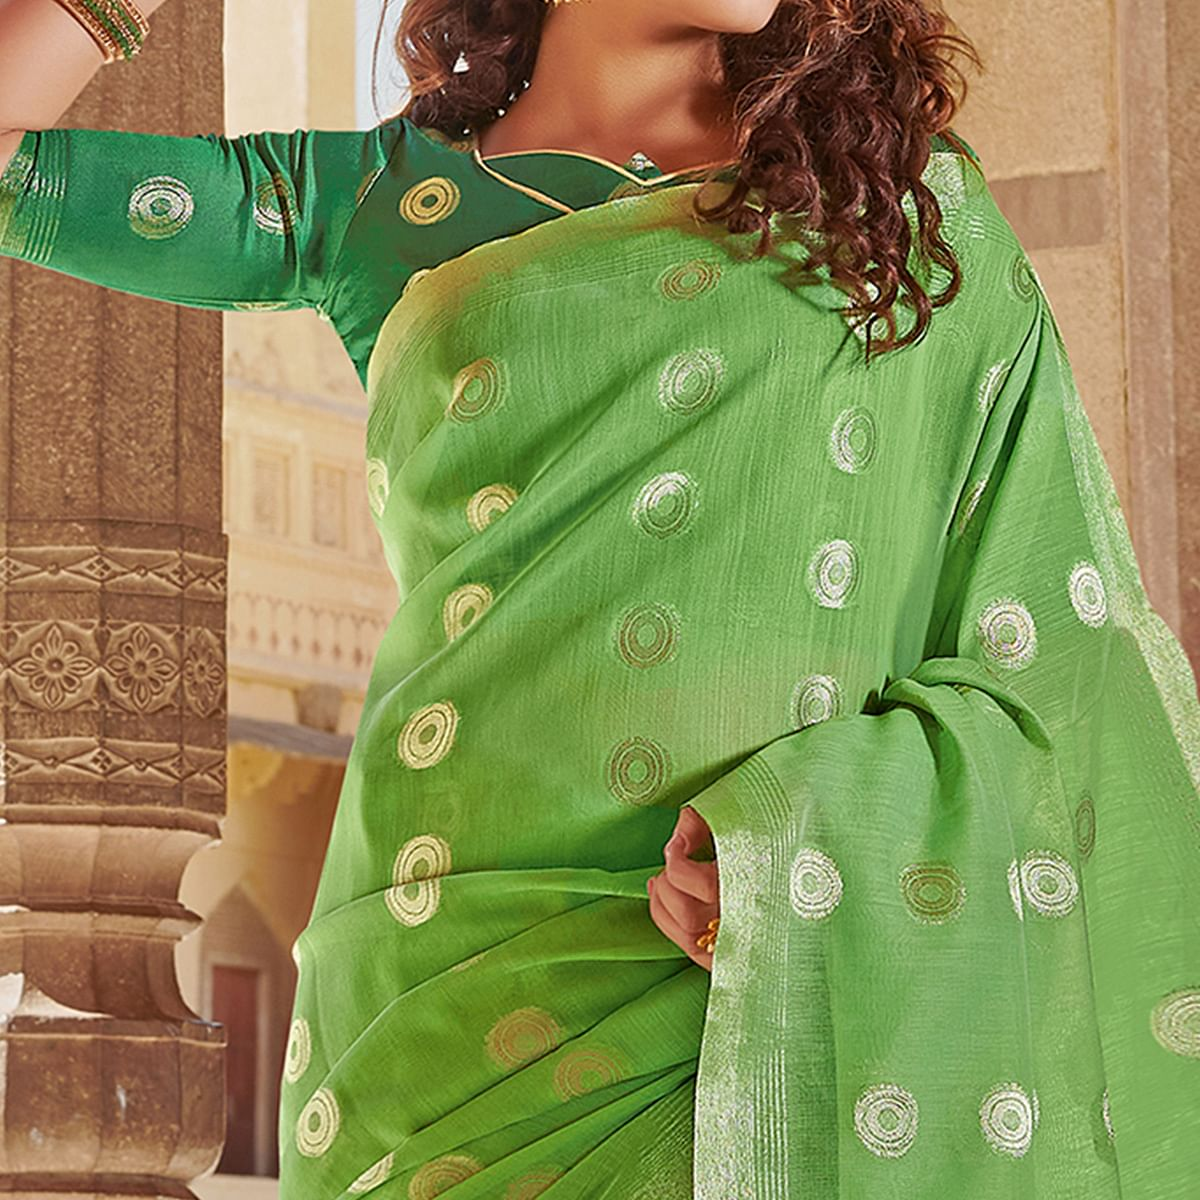 Pleasance Green Colored Festive Wear Woven Linen Cotton Saree With Tassels